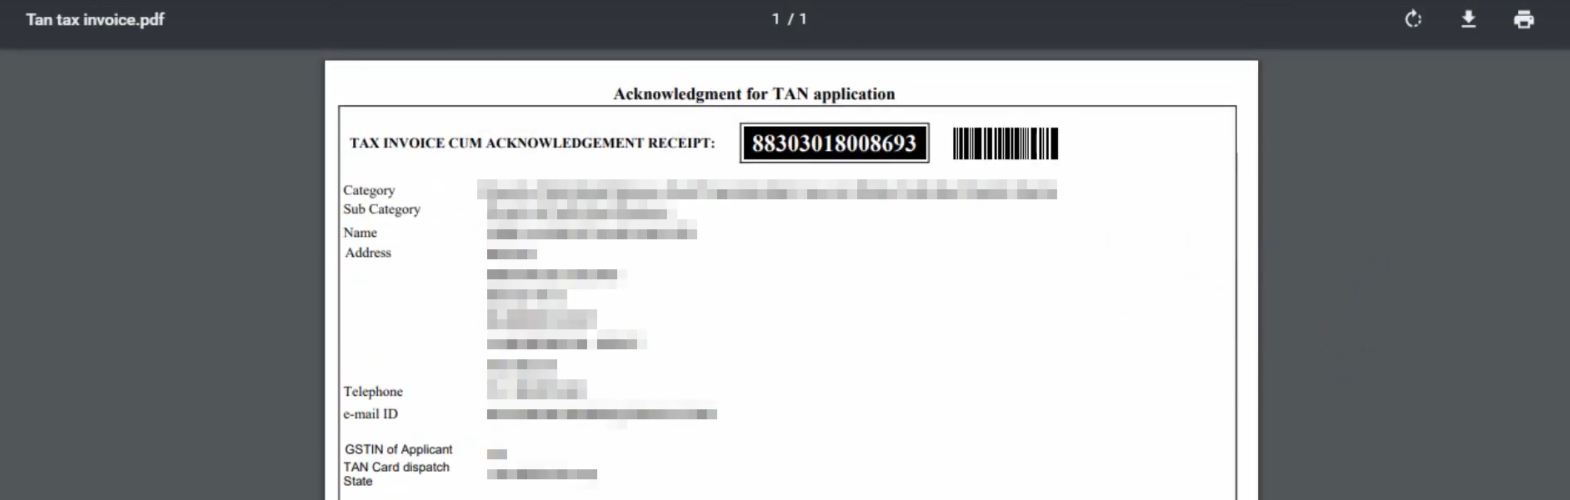 TIN-NSDL - TAN Tax Invoice